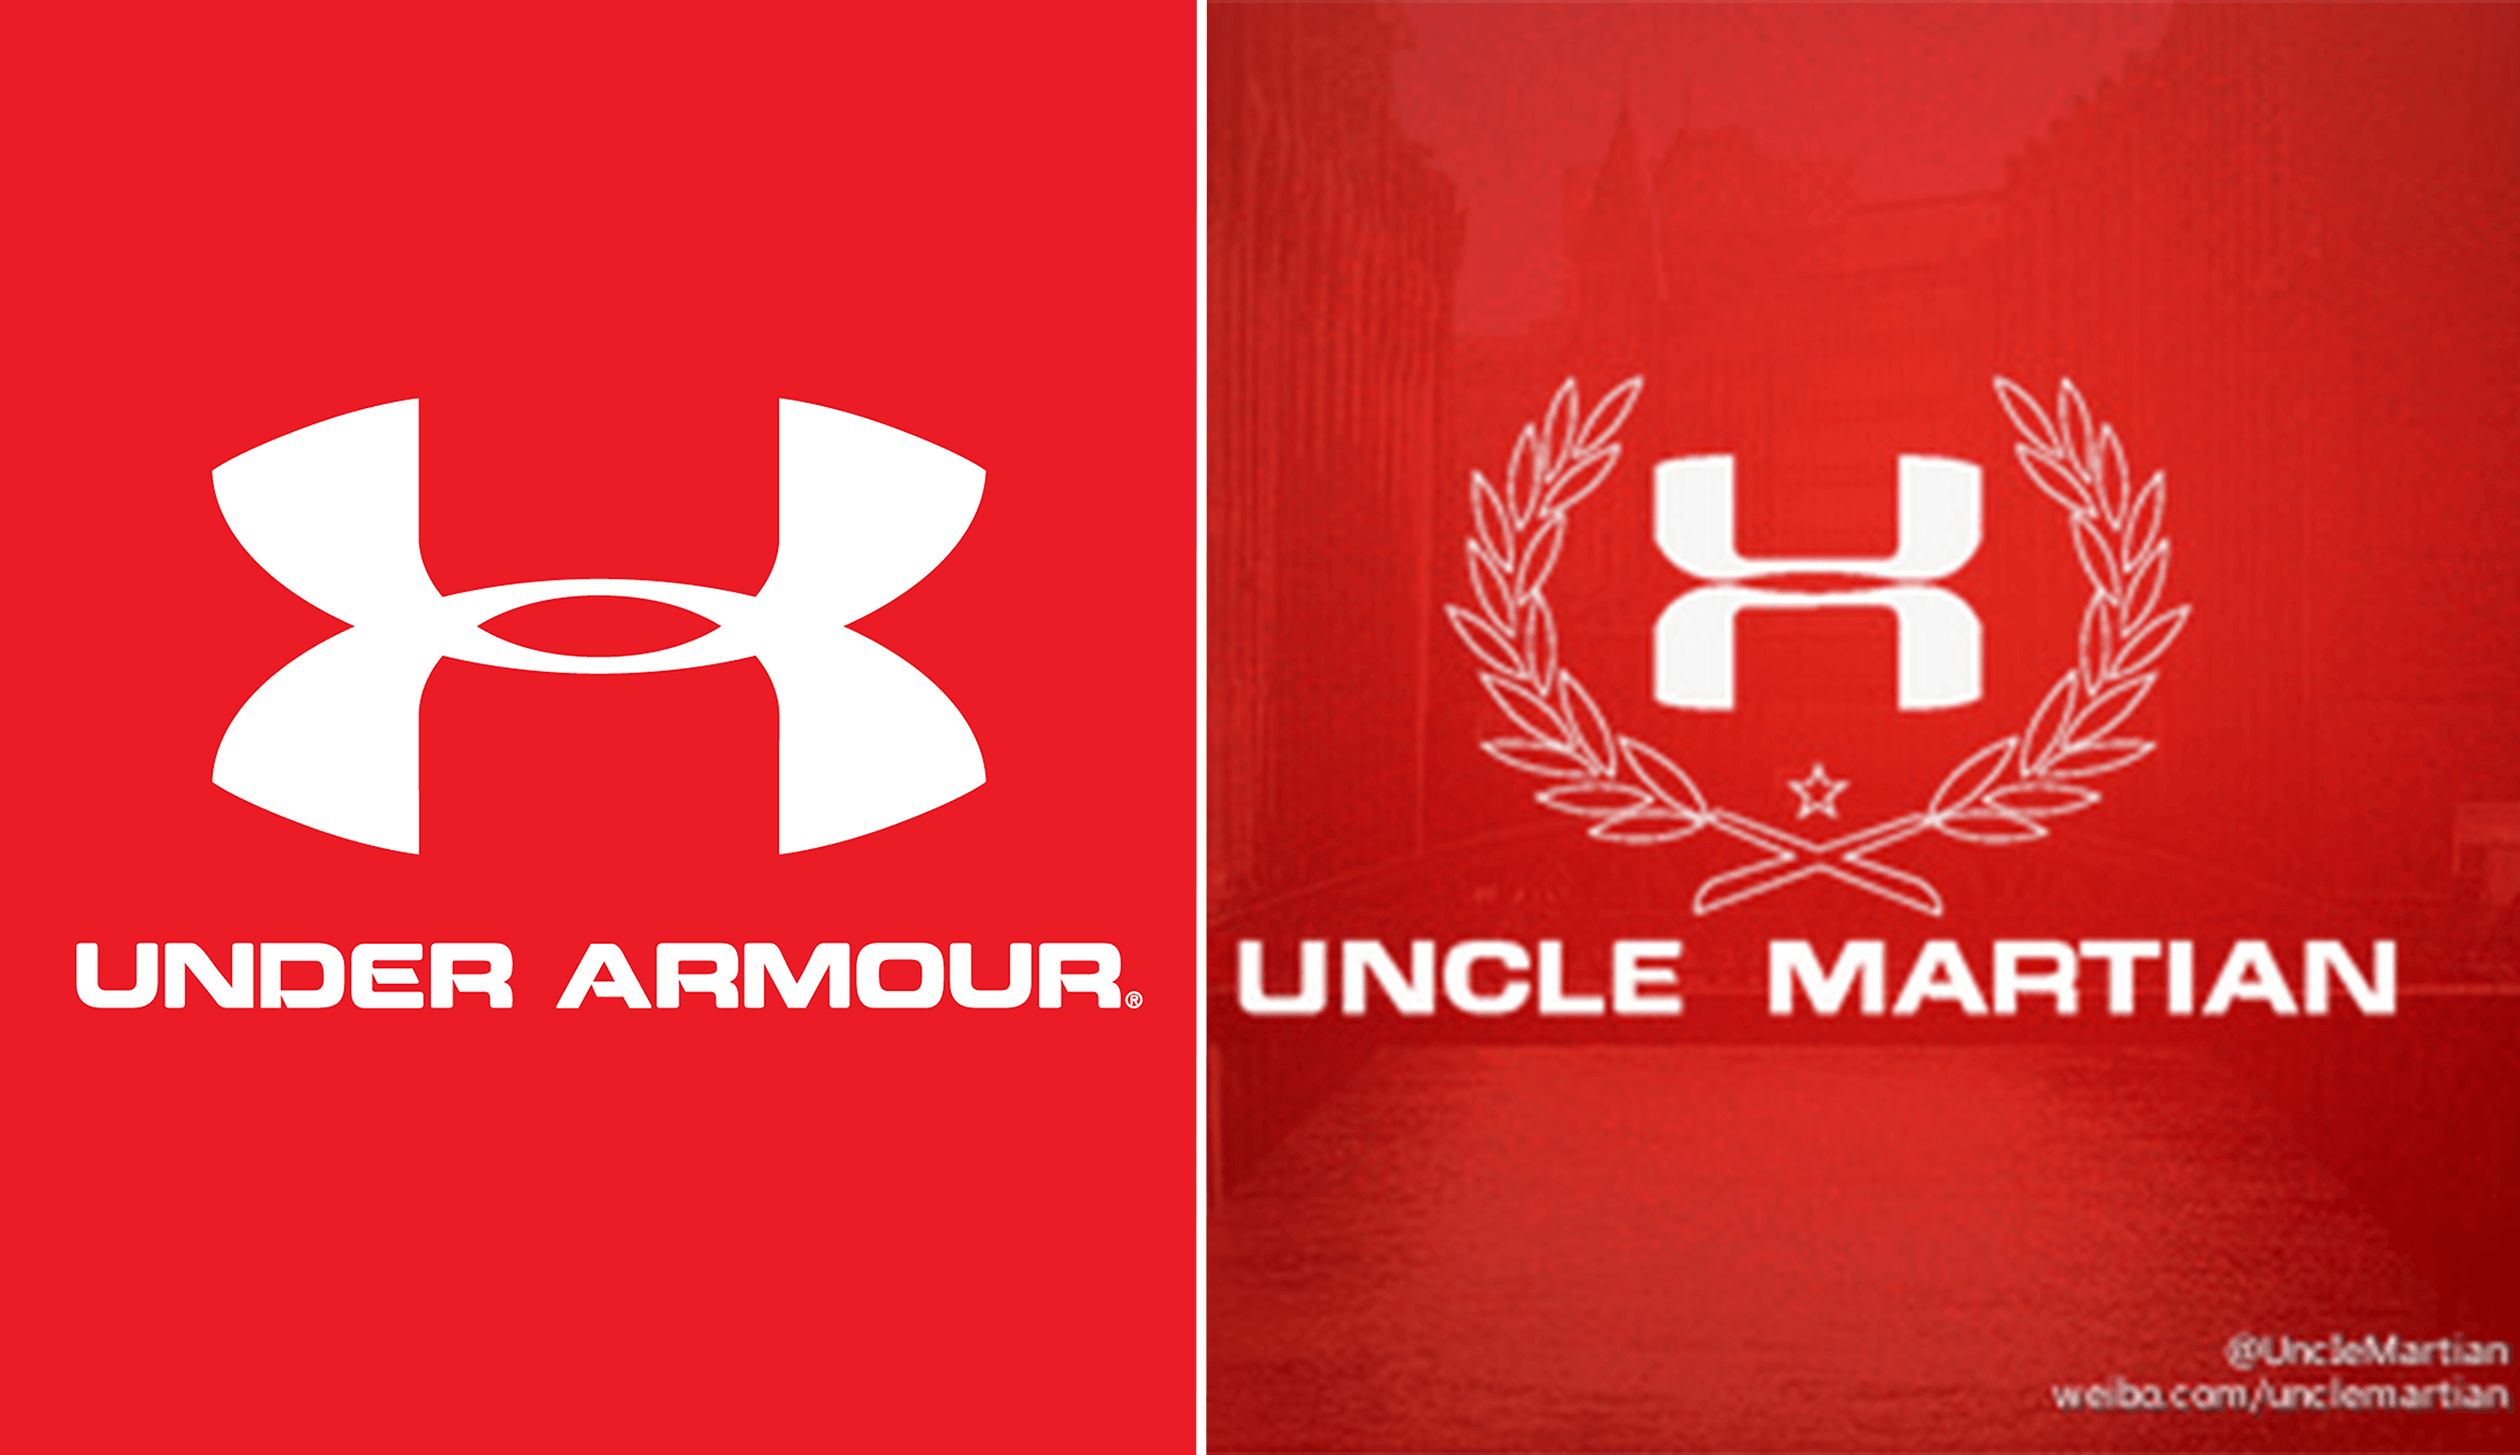 Under Armour Logo - Under Armour Vows To Go After